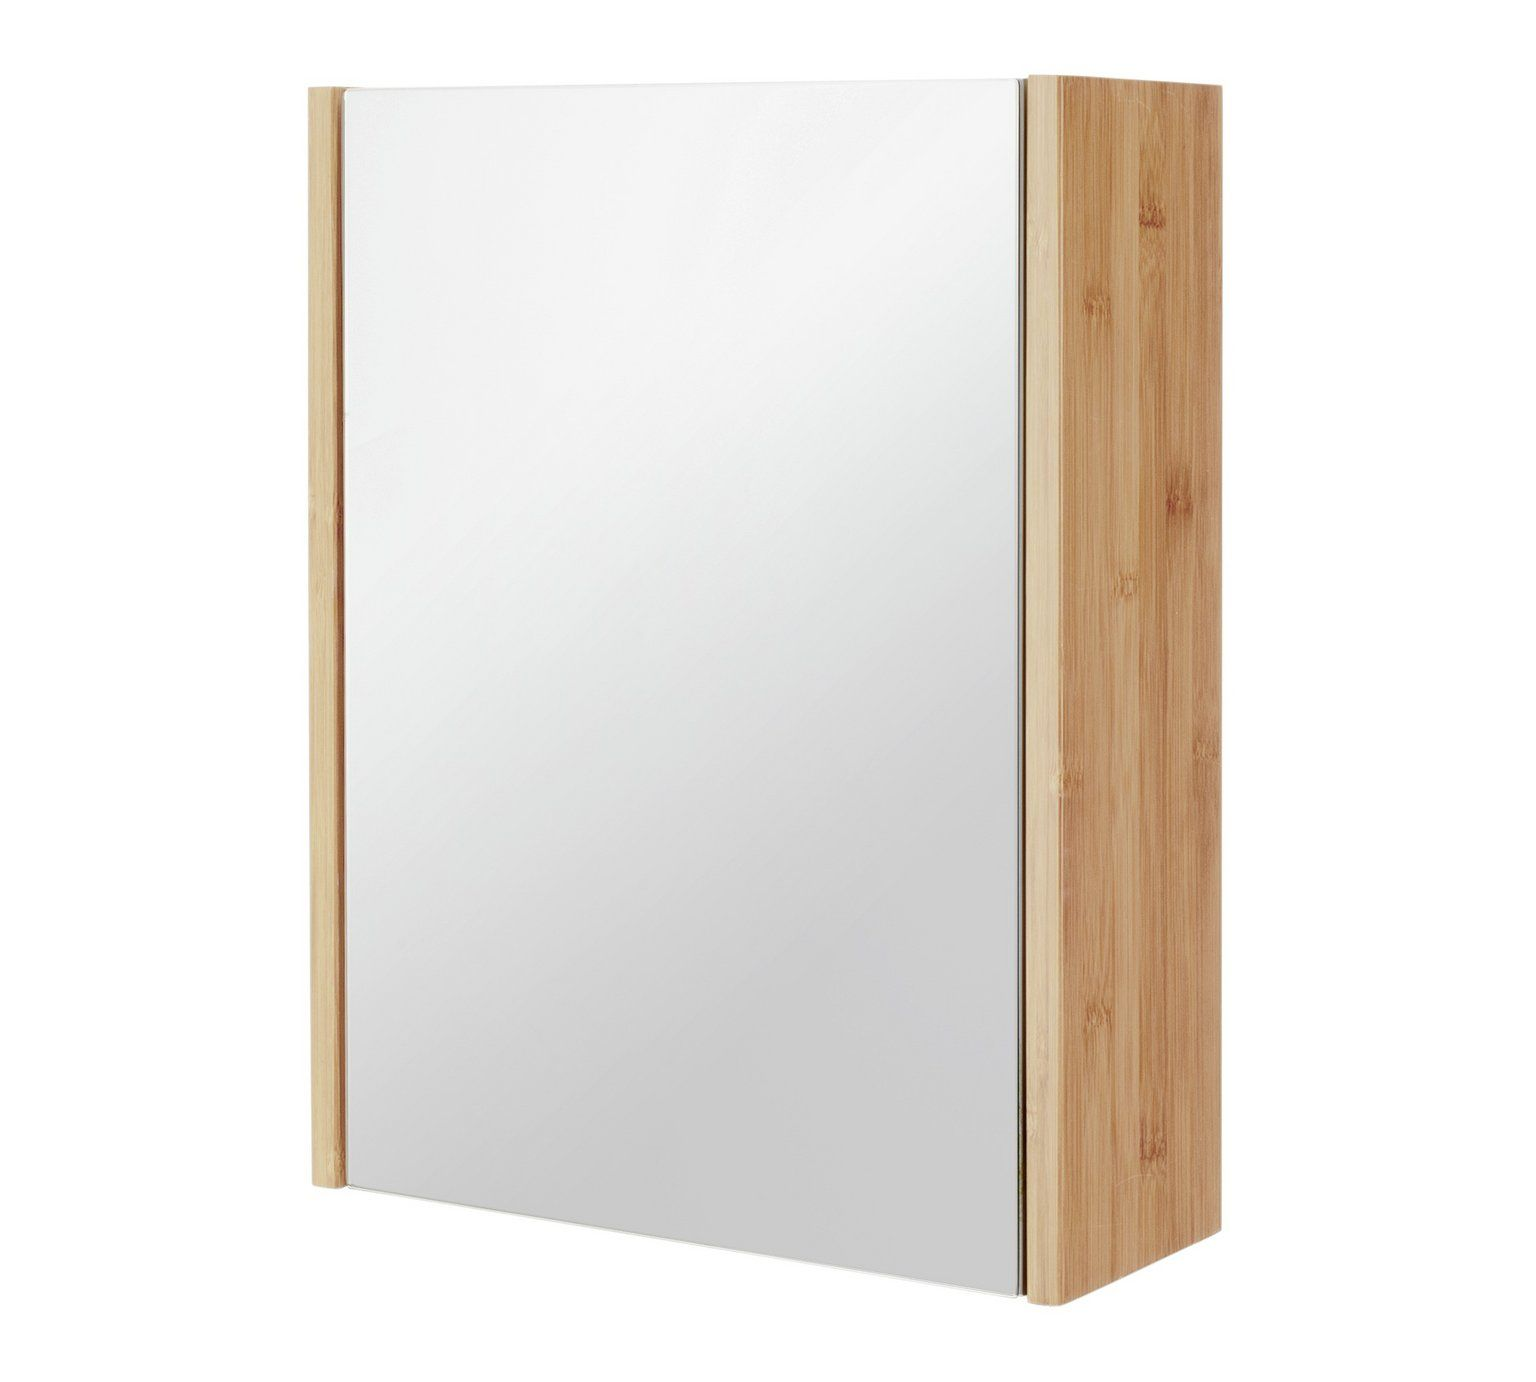 Buy Collection 1 Door Mirrored Bamboo Cabinet Two Tone At Argos Co